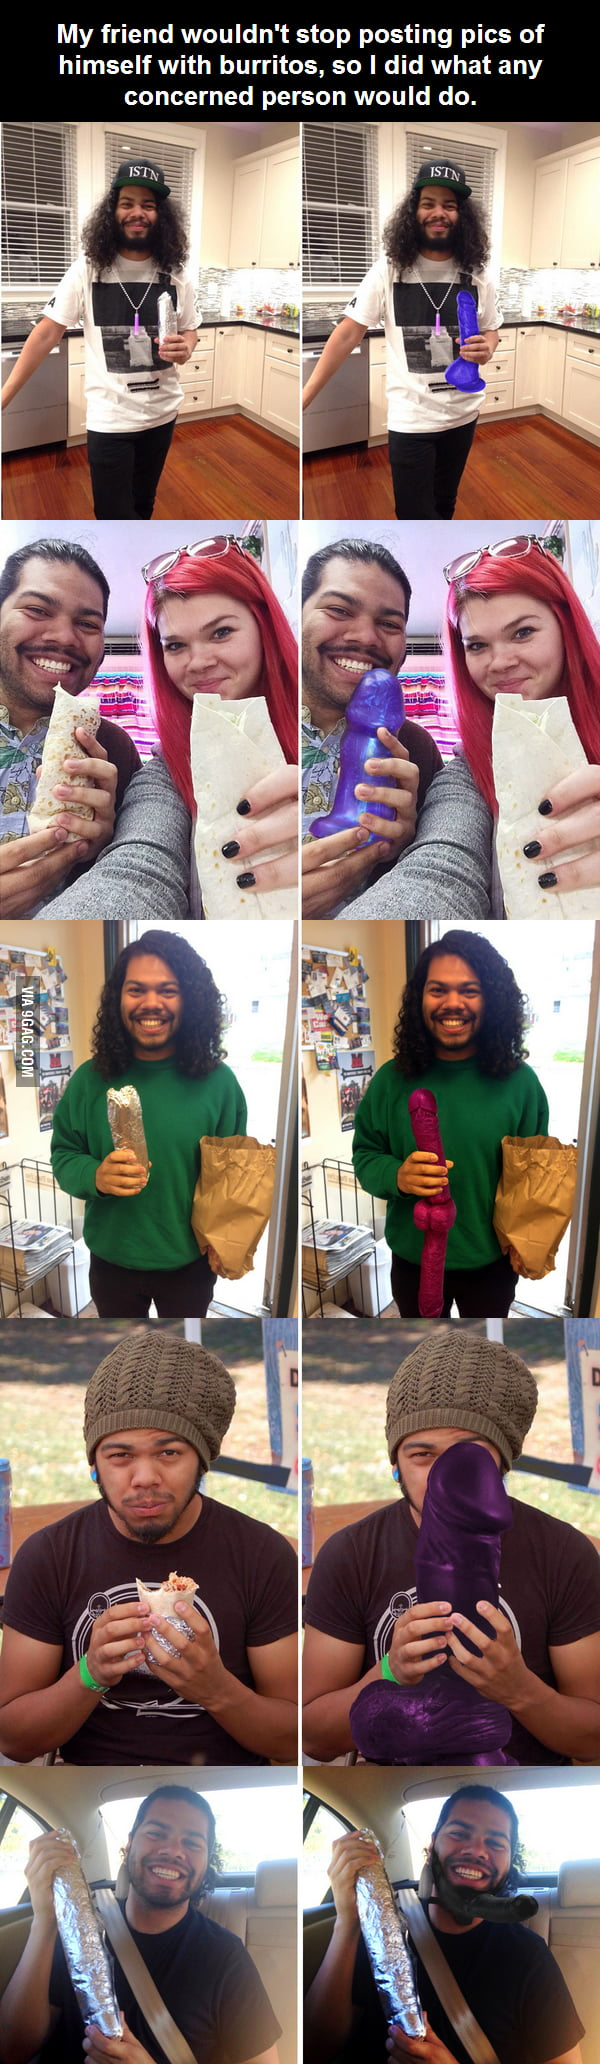 Guy wouldn't stop posting burrito-holding selfies so his friend did what any concerned person would do.